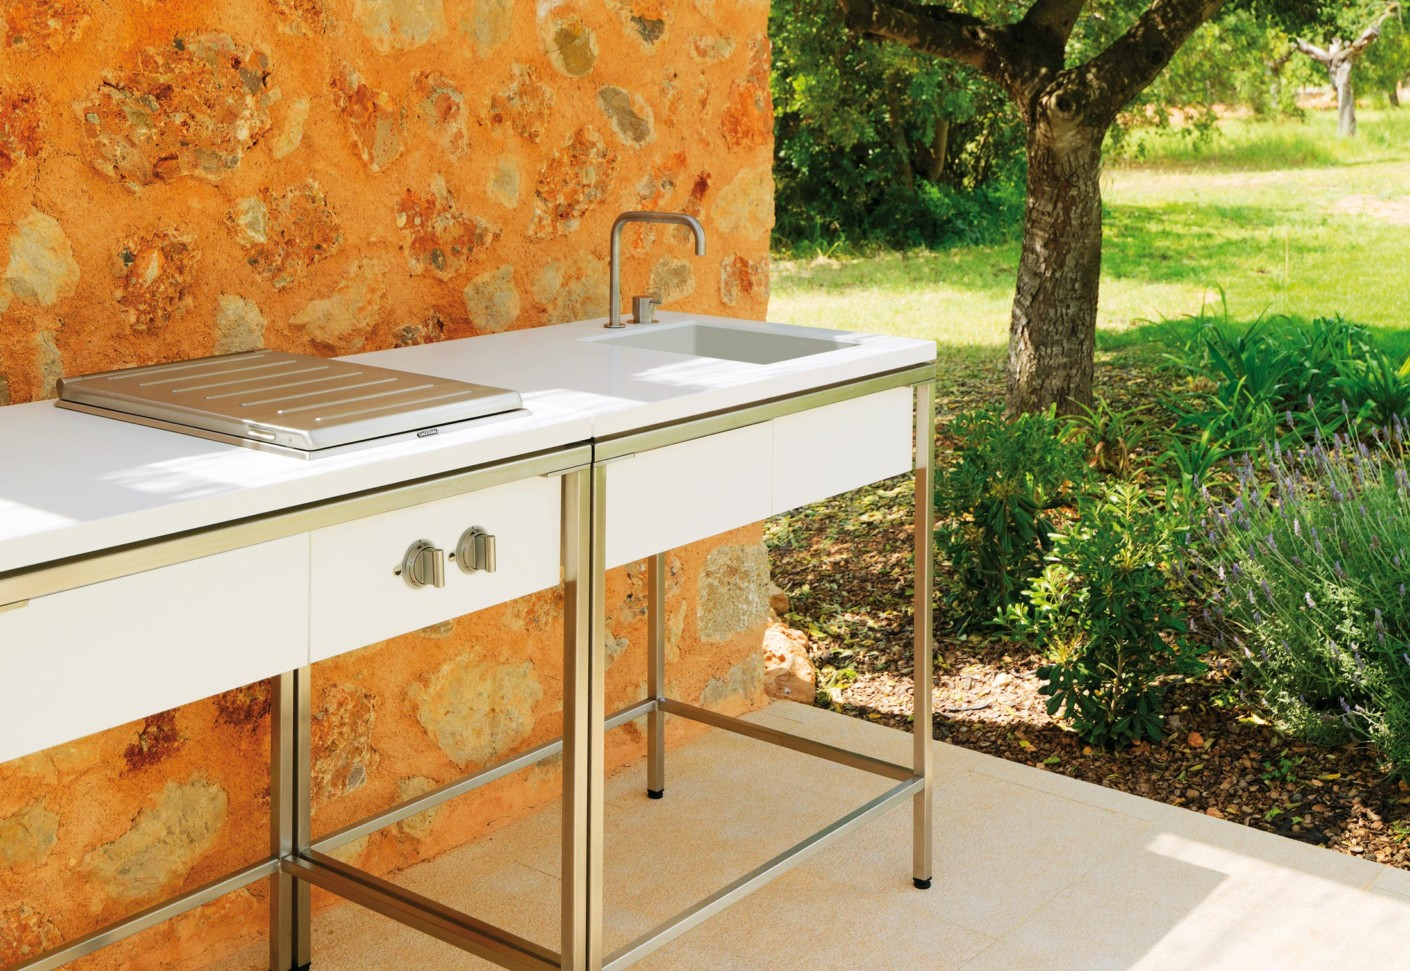 outdoor kitchen sink modul outdoor kitchen sink Outdoor Kitchen sink modul